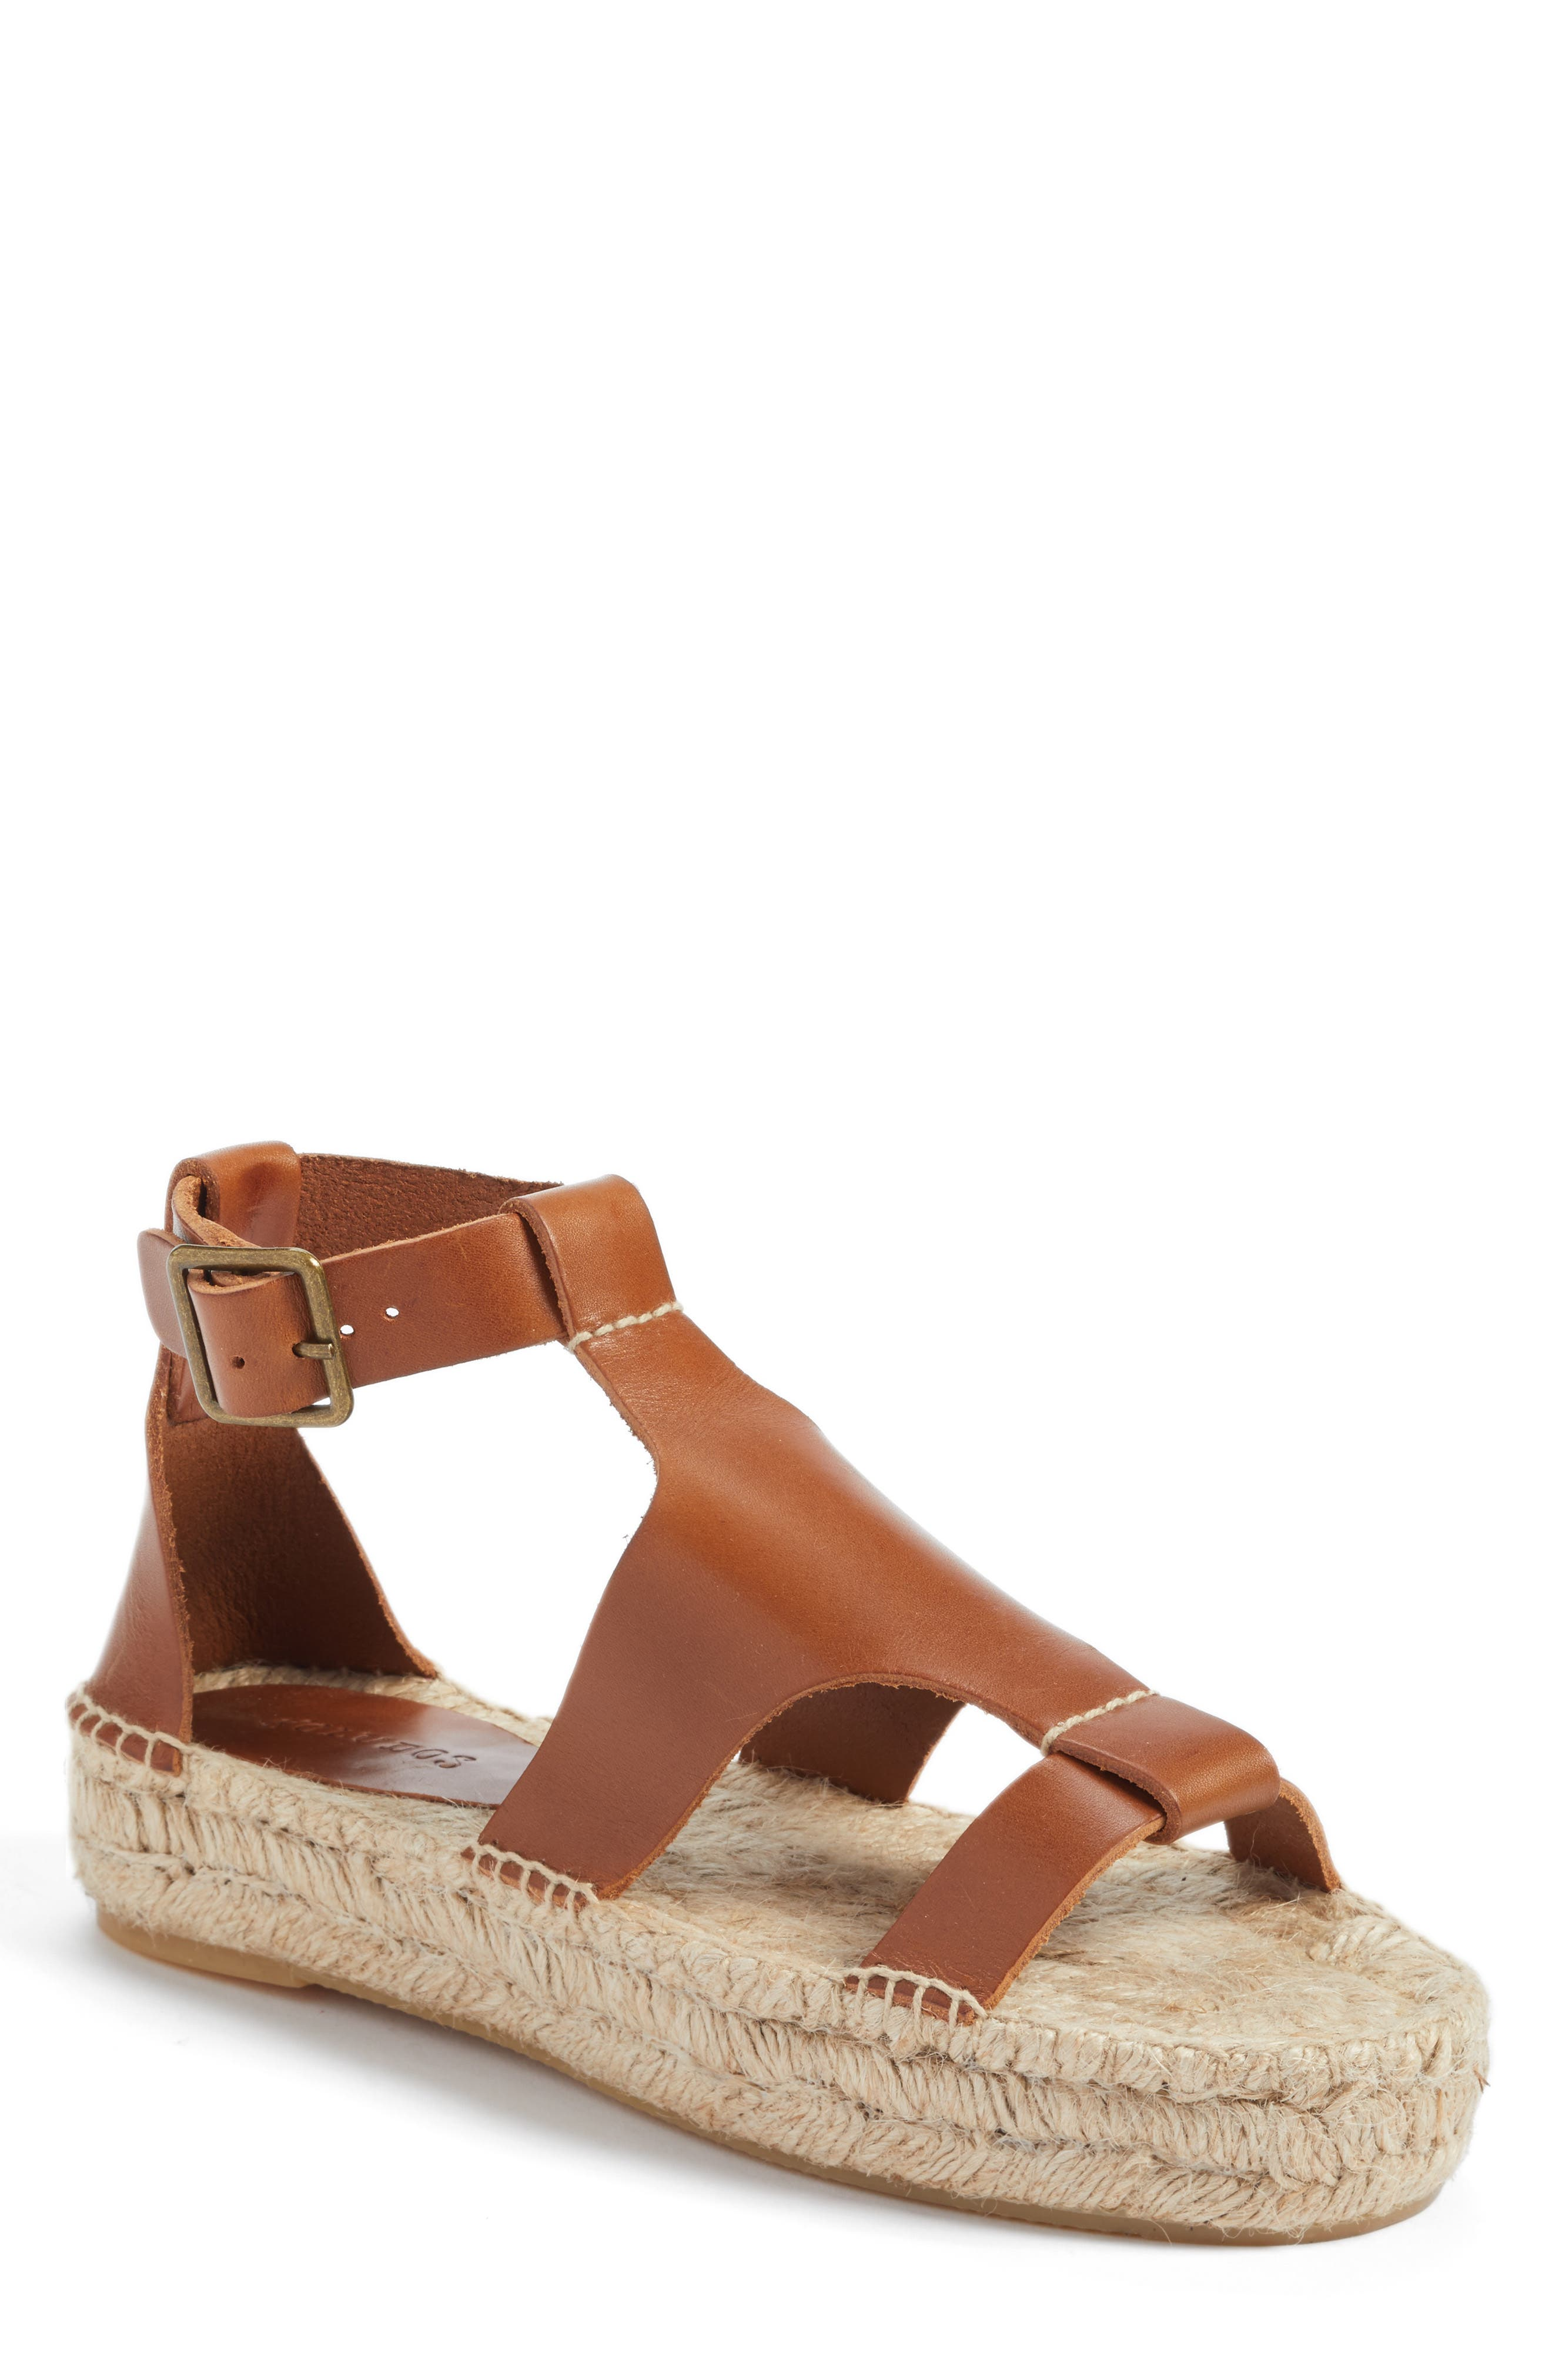 Main Image - Soludos Strappy Espadrille Sandal (Women)